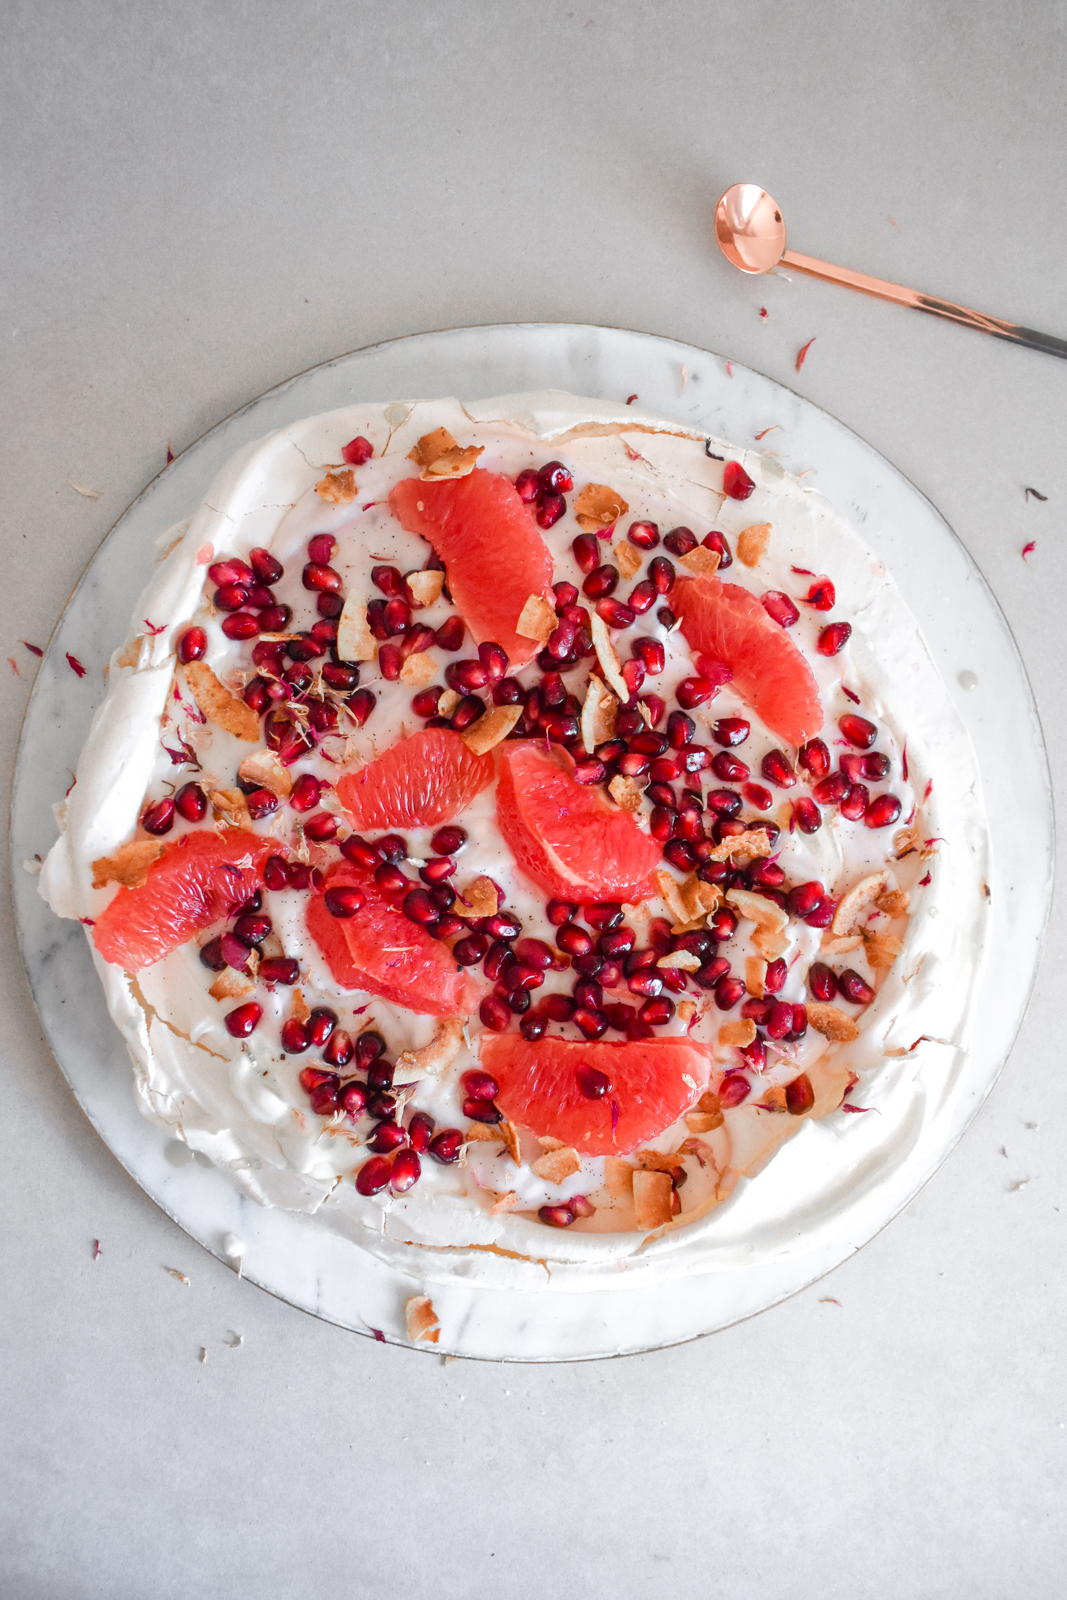 Grapefruit & Pomegranate Pavlova